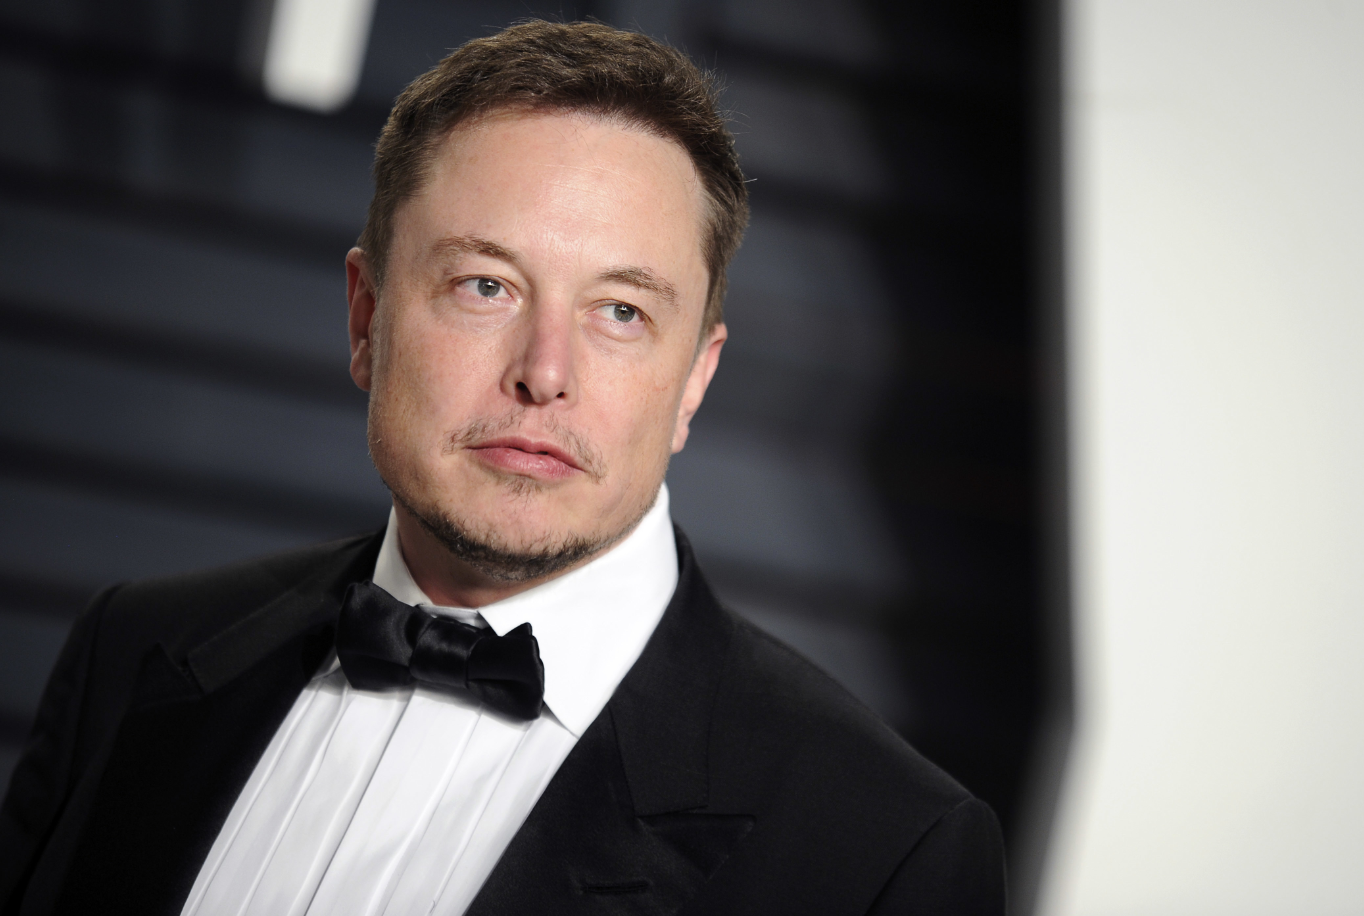 It's all or nothing for Elon Musk as Tesla demands massive growth